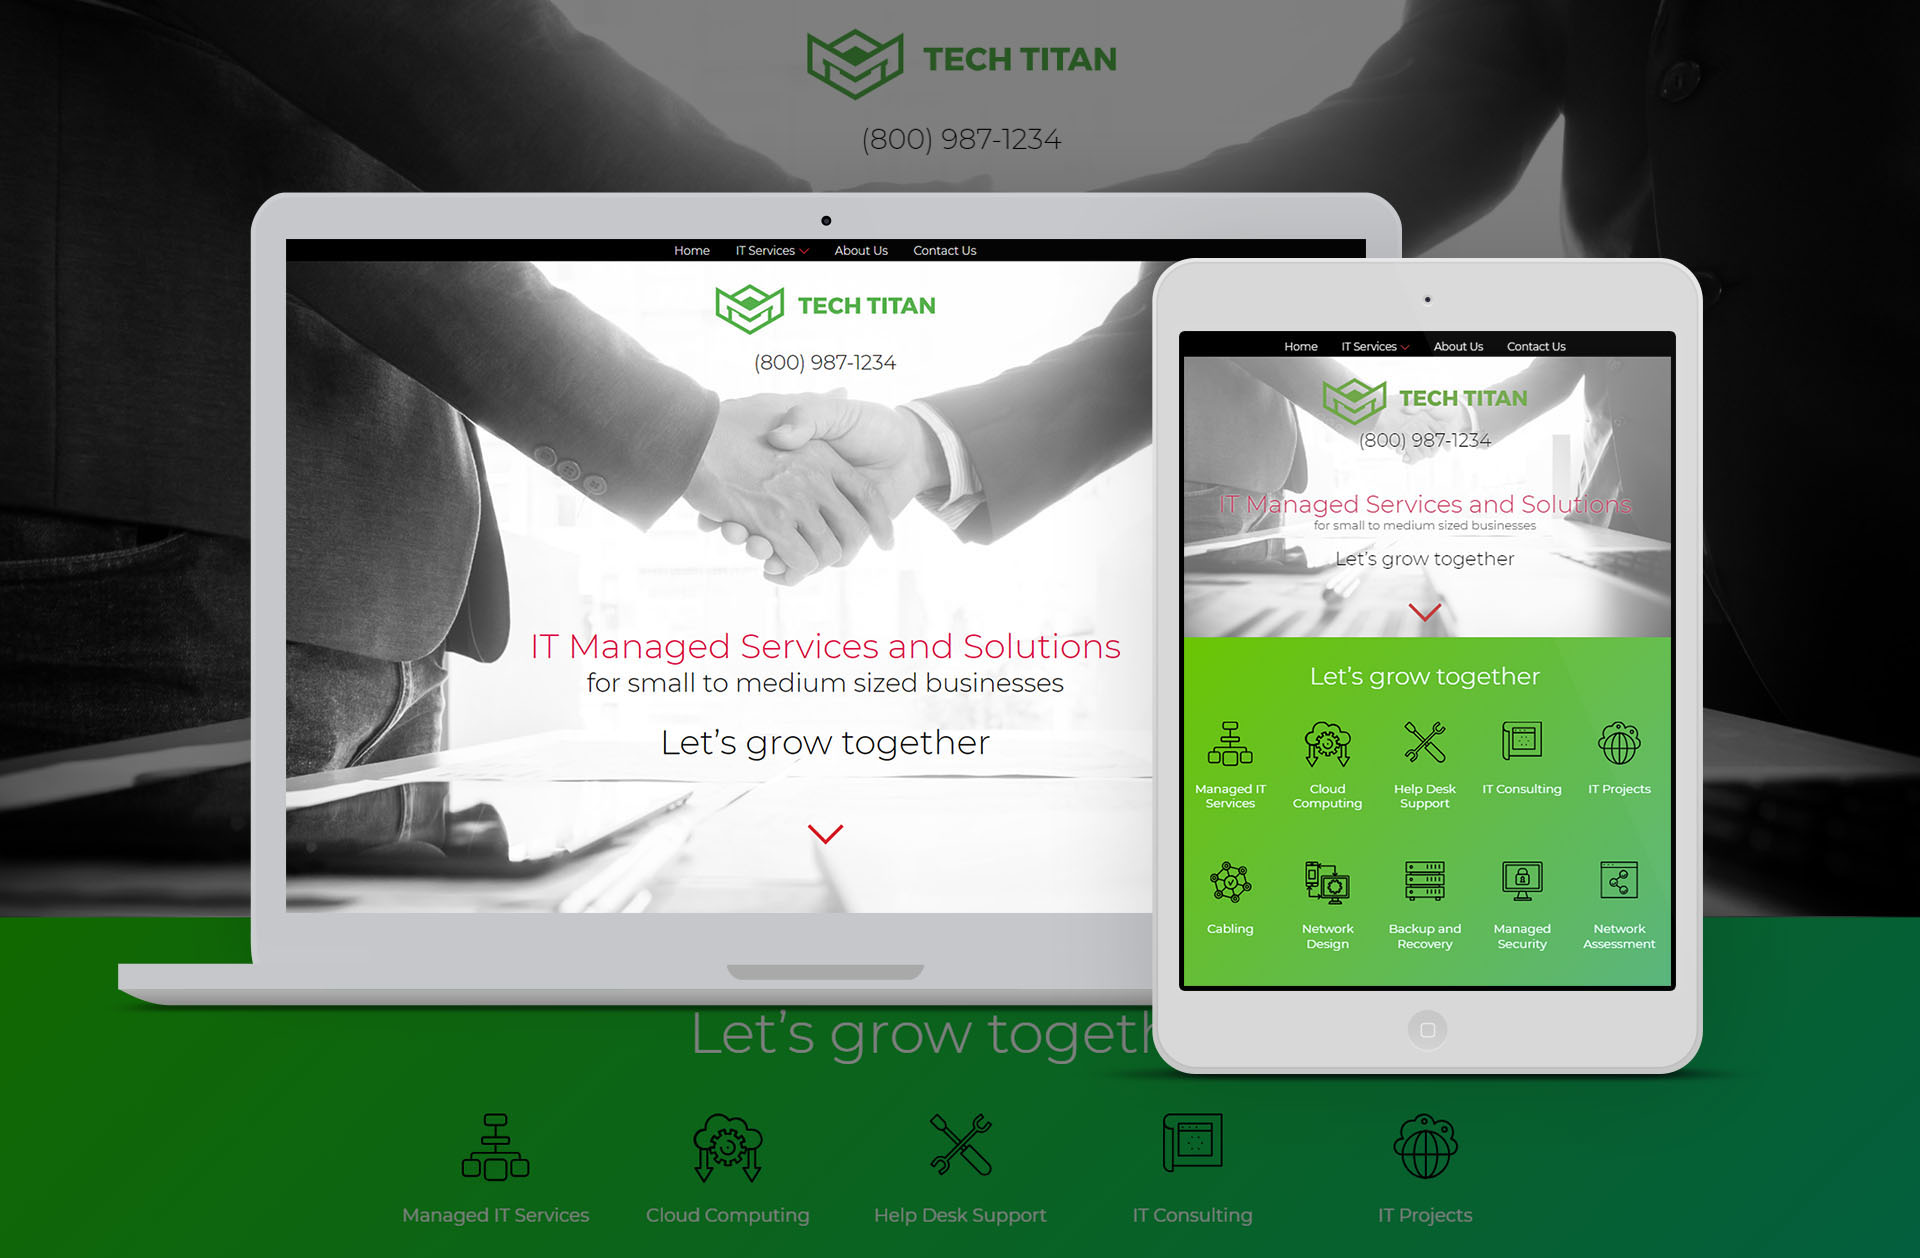 Tech Titan - It managed Services - Upspace media